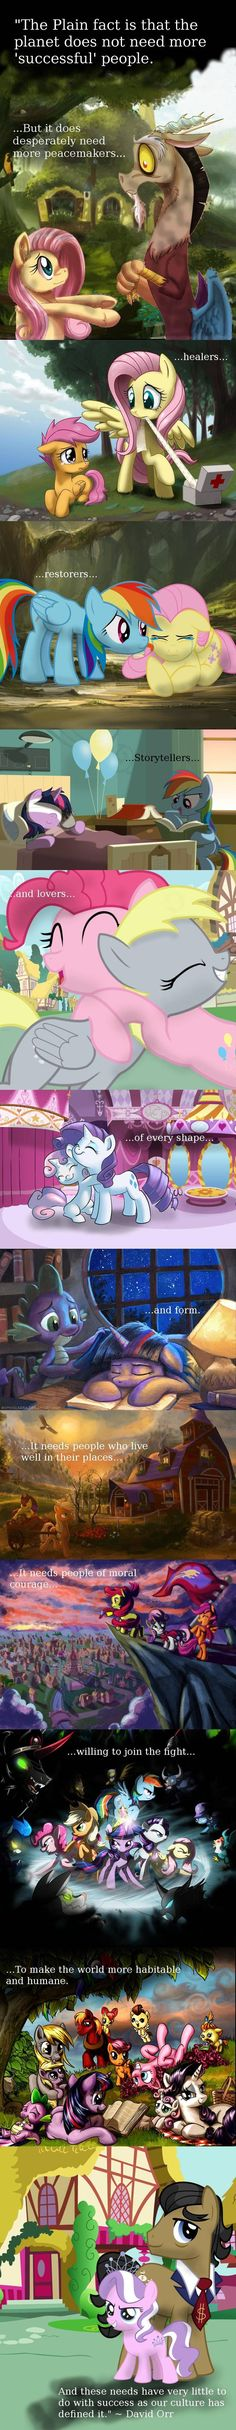 Inspiring quote told in My Little Pony fanart - via reddit